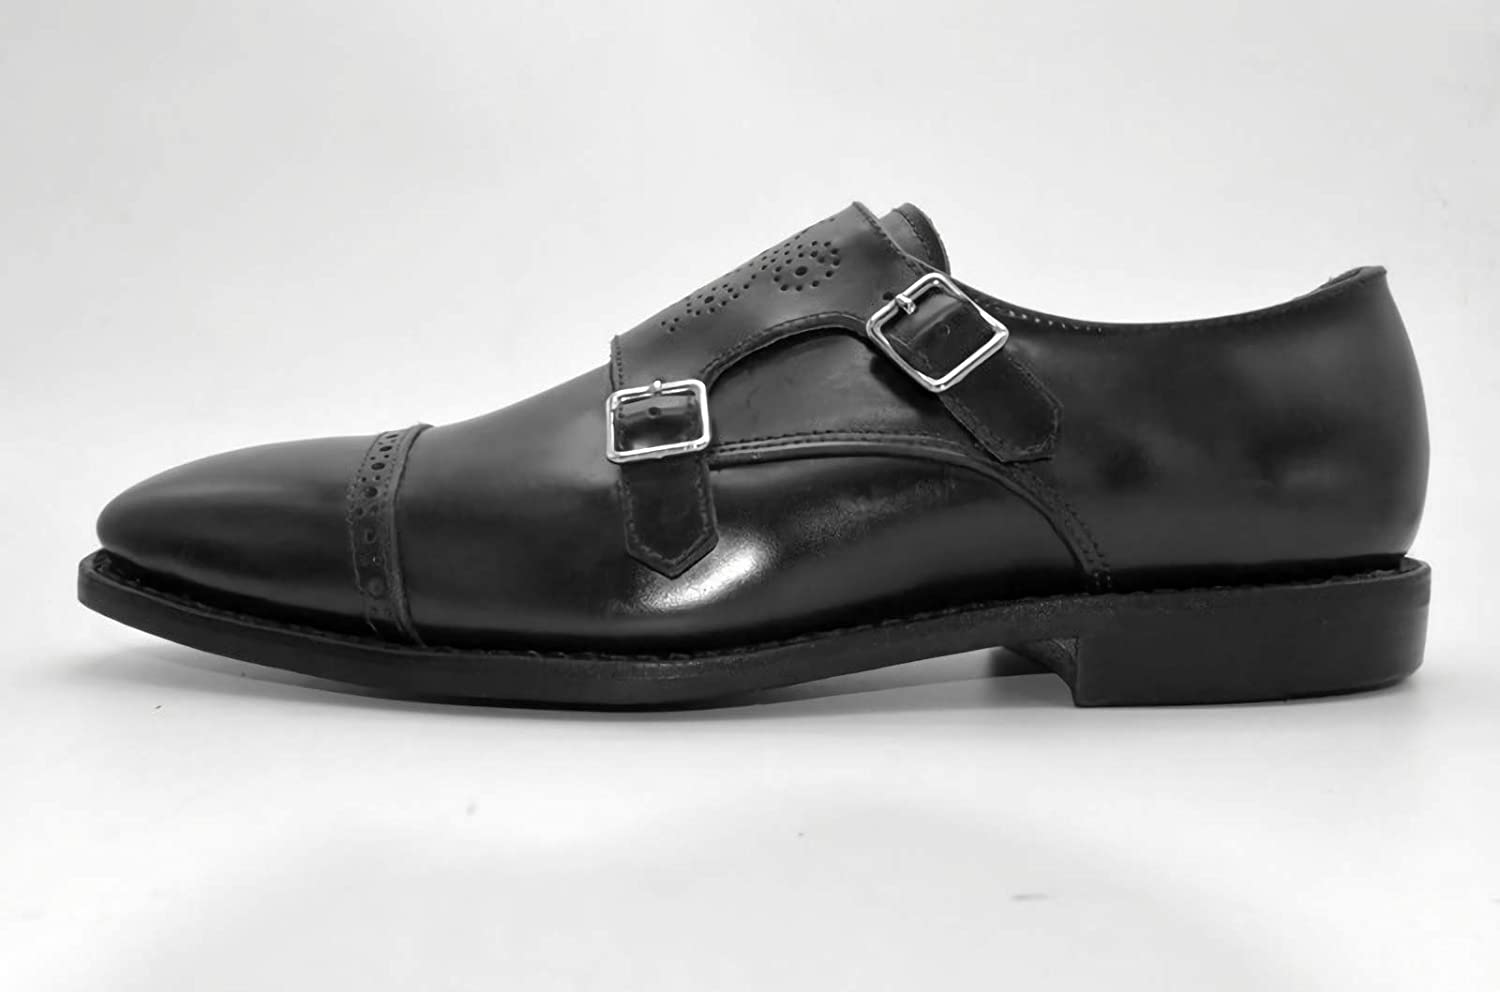 Goodyear Welted Brogue Double Strap Monk Cash special price Shoes 55% OFF